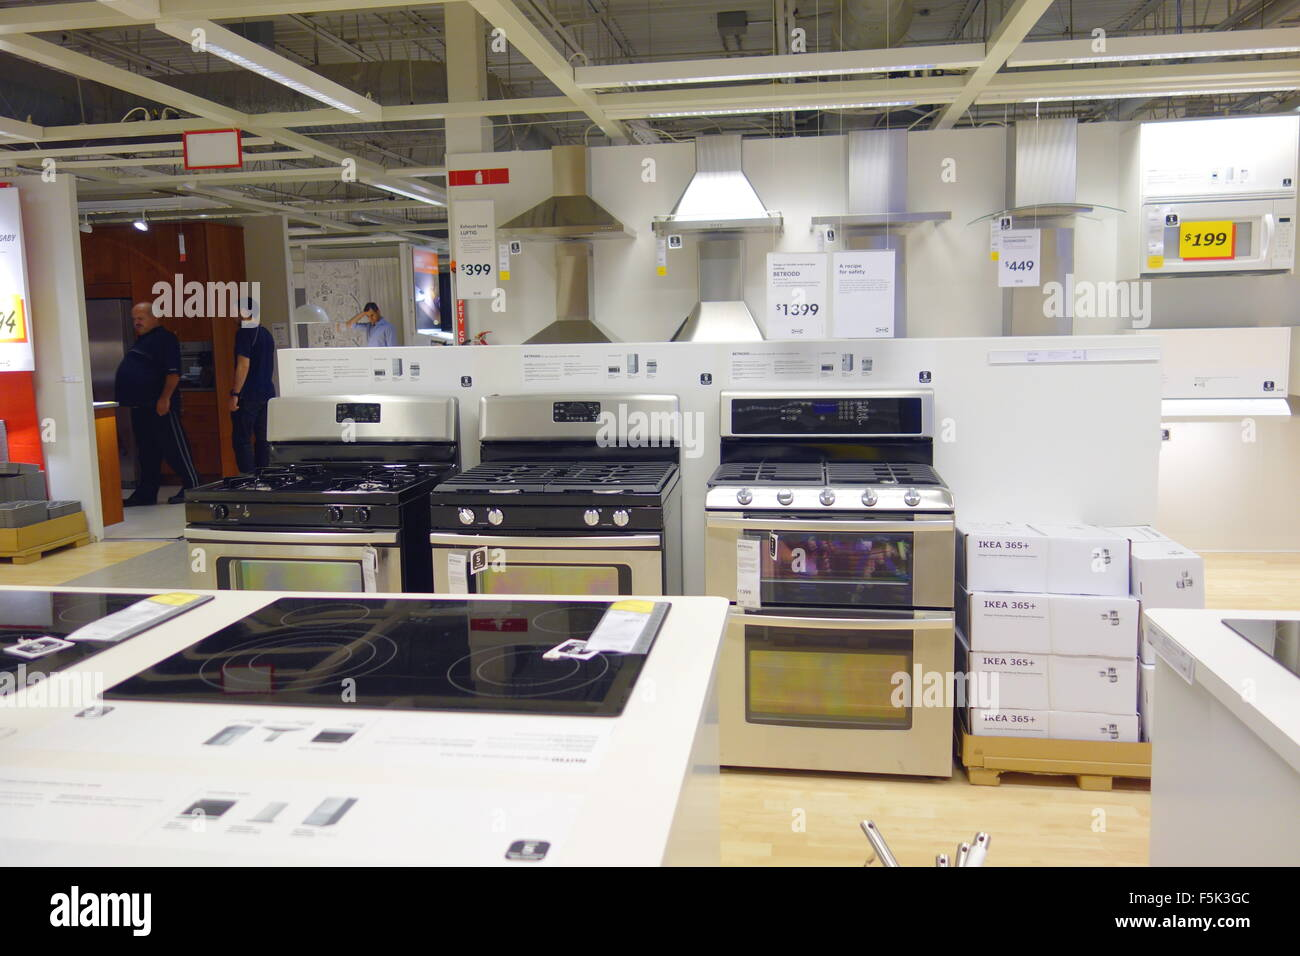 Kitchen appliances at an Ikea store in Toronto, Canada Stock Photo ...